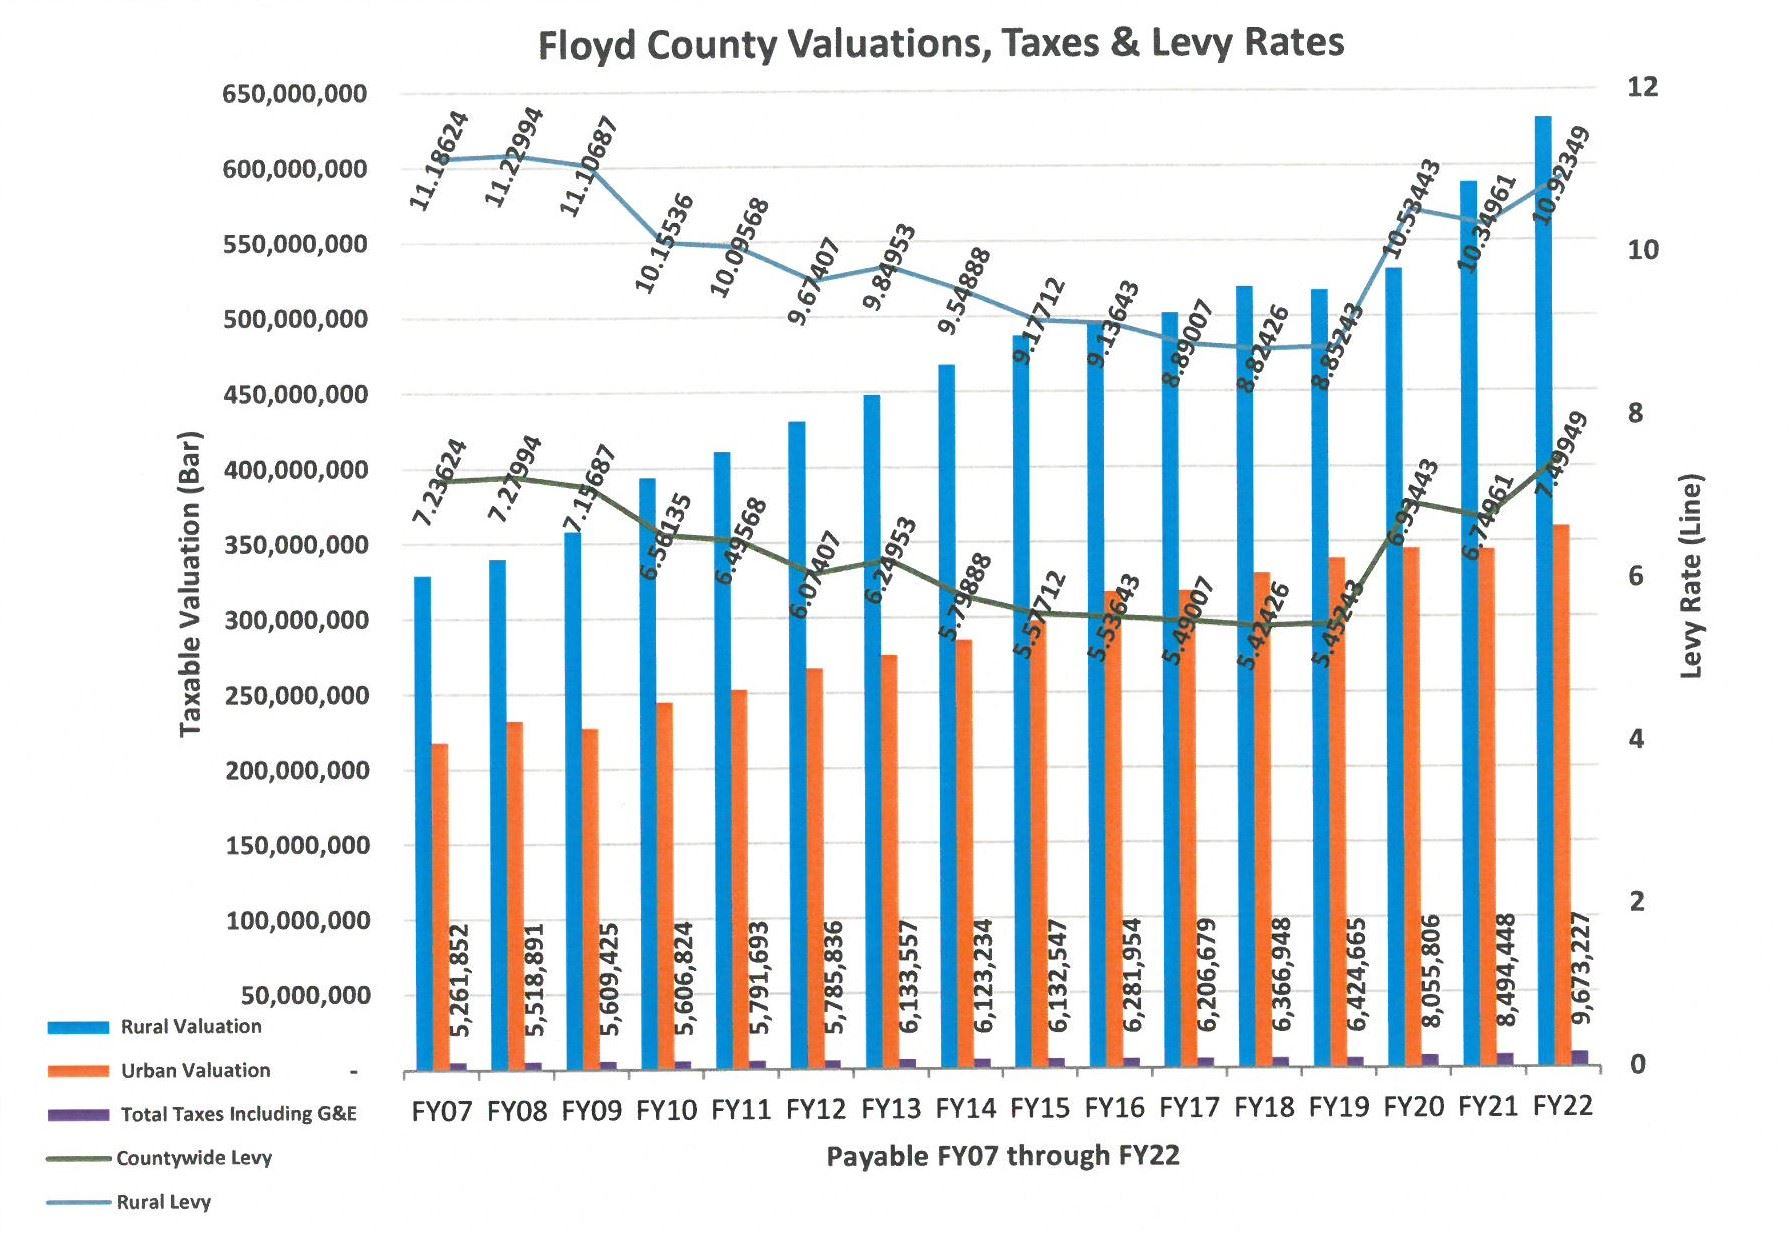 FY22 Valuations-Taxes-Rates